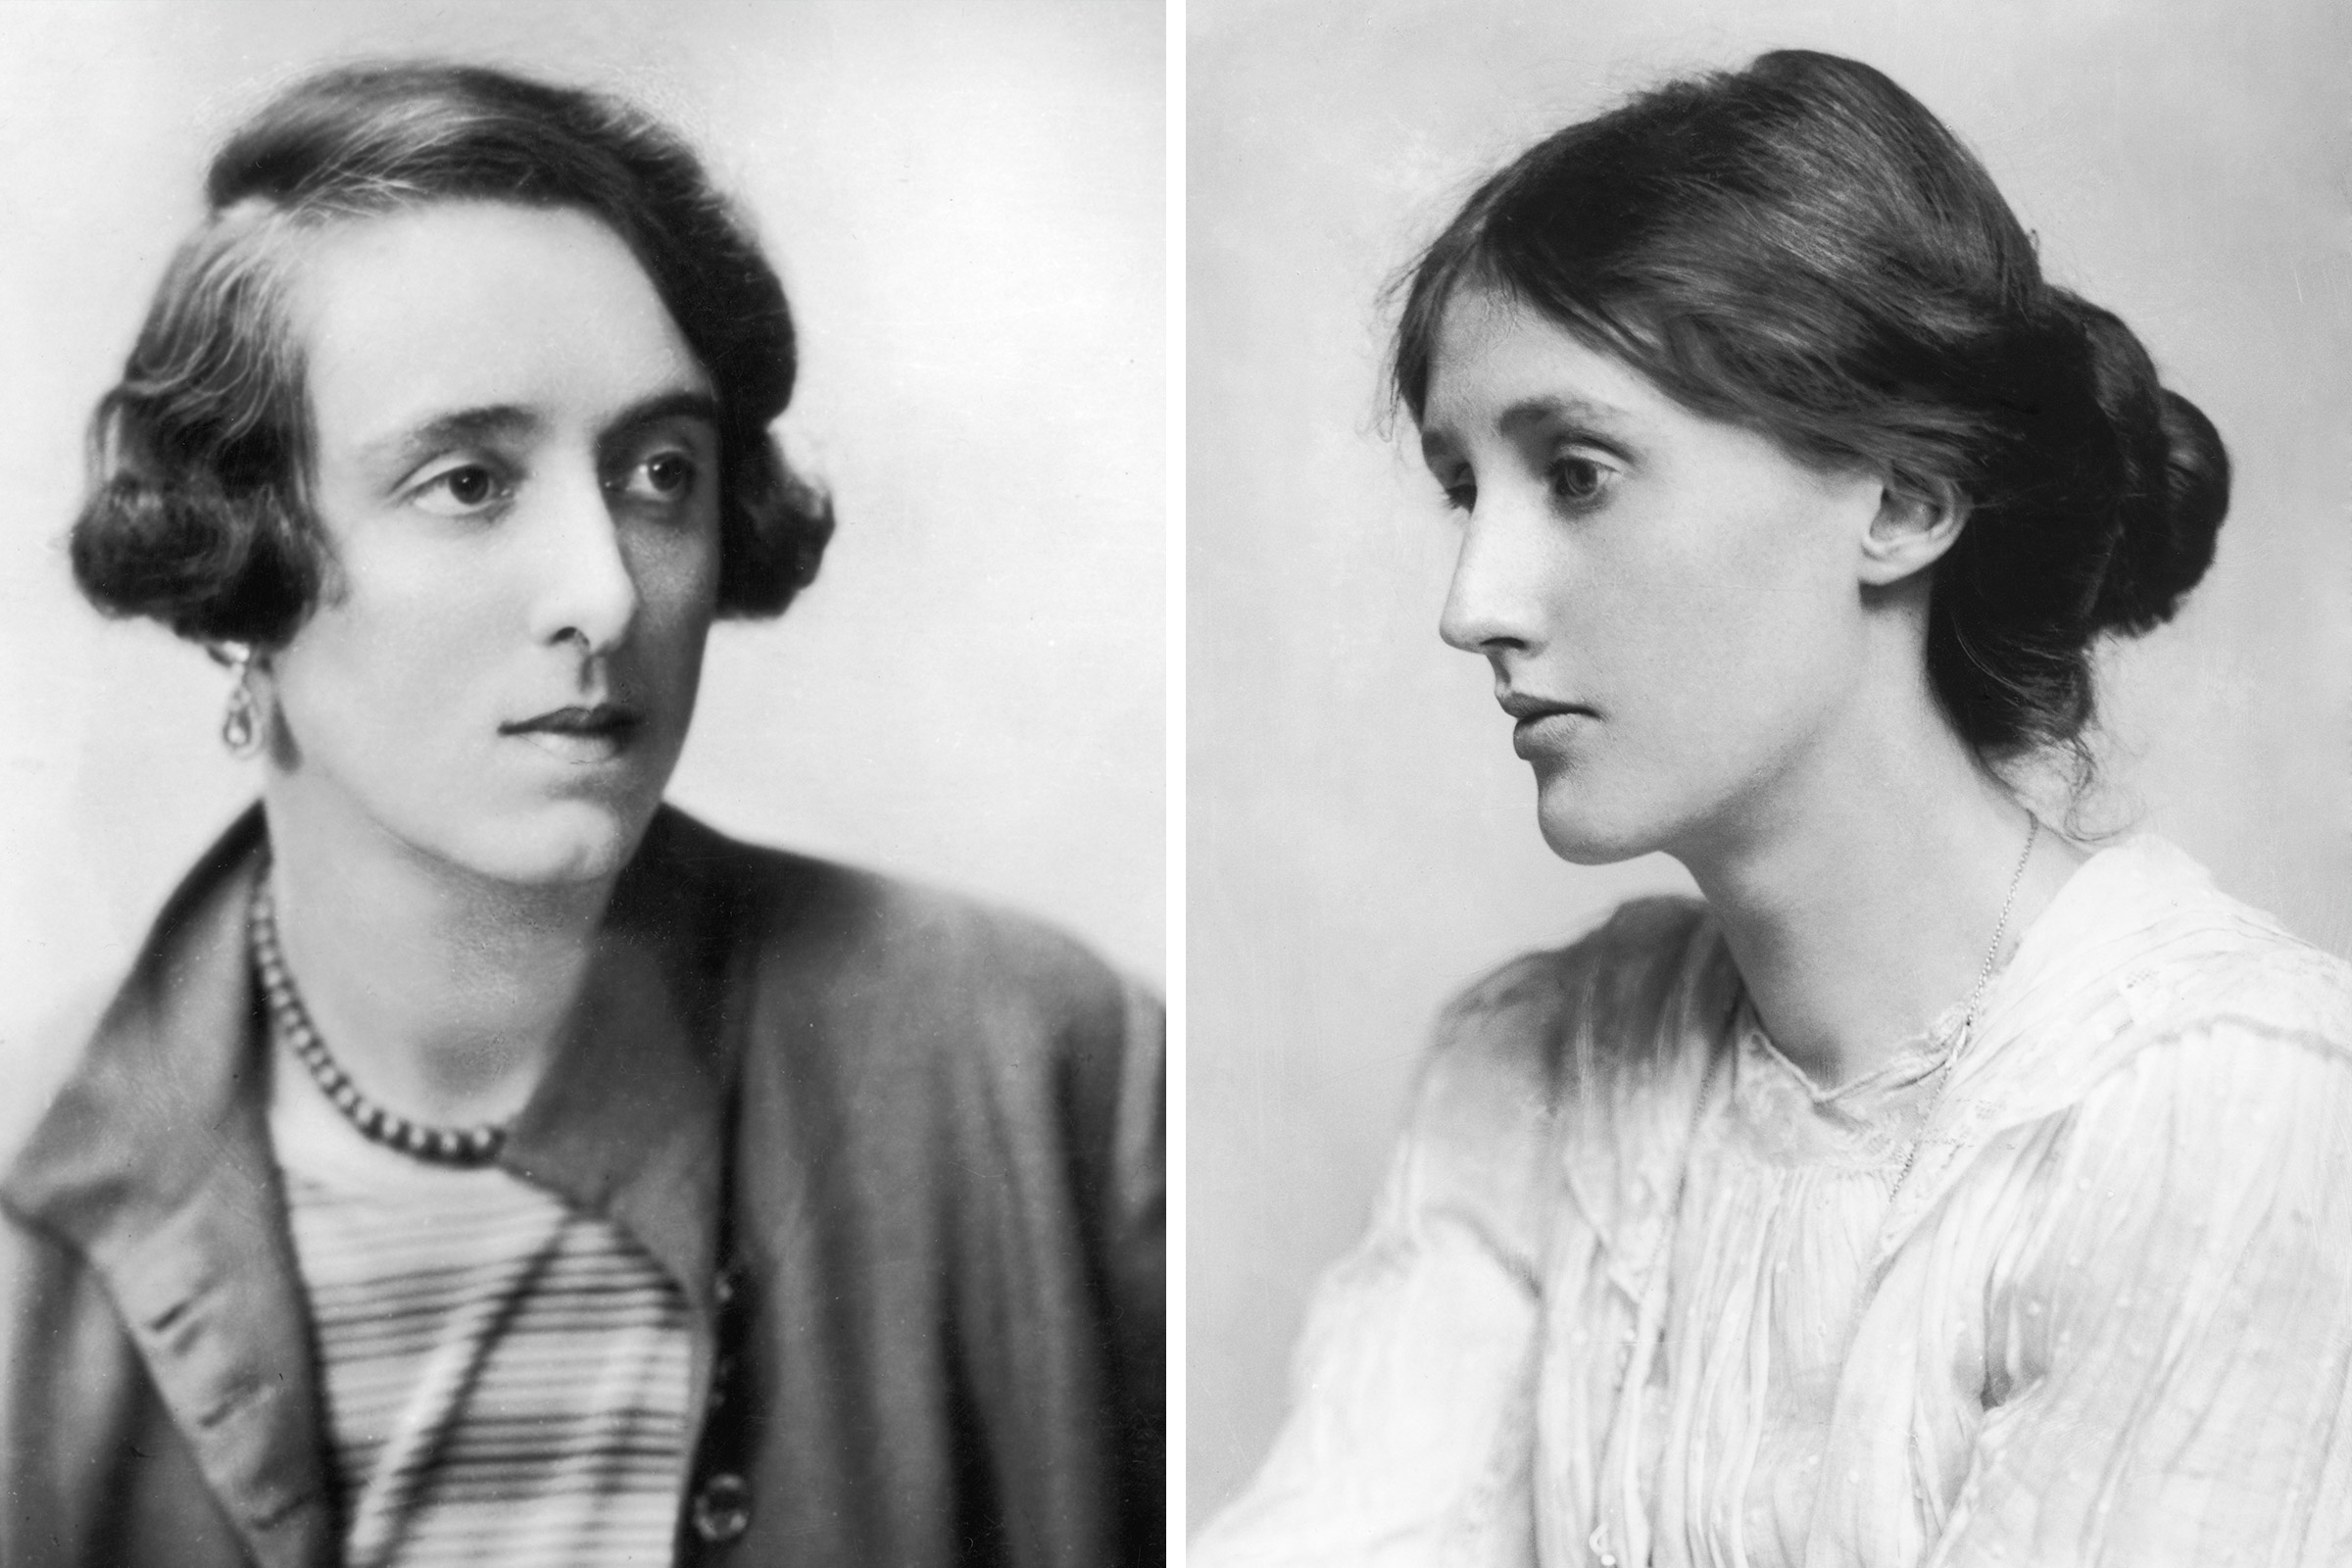 L to R: Vita Sackville-West and Virginia Woolf